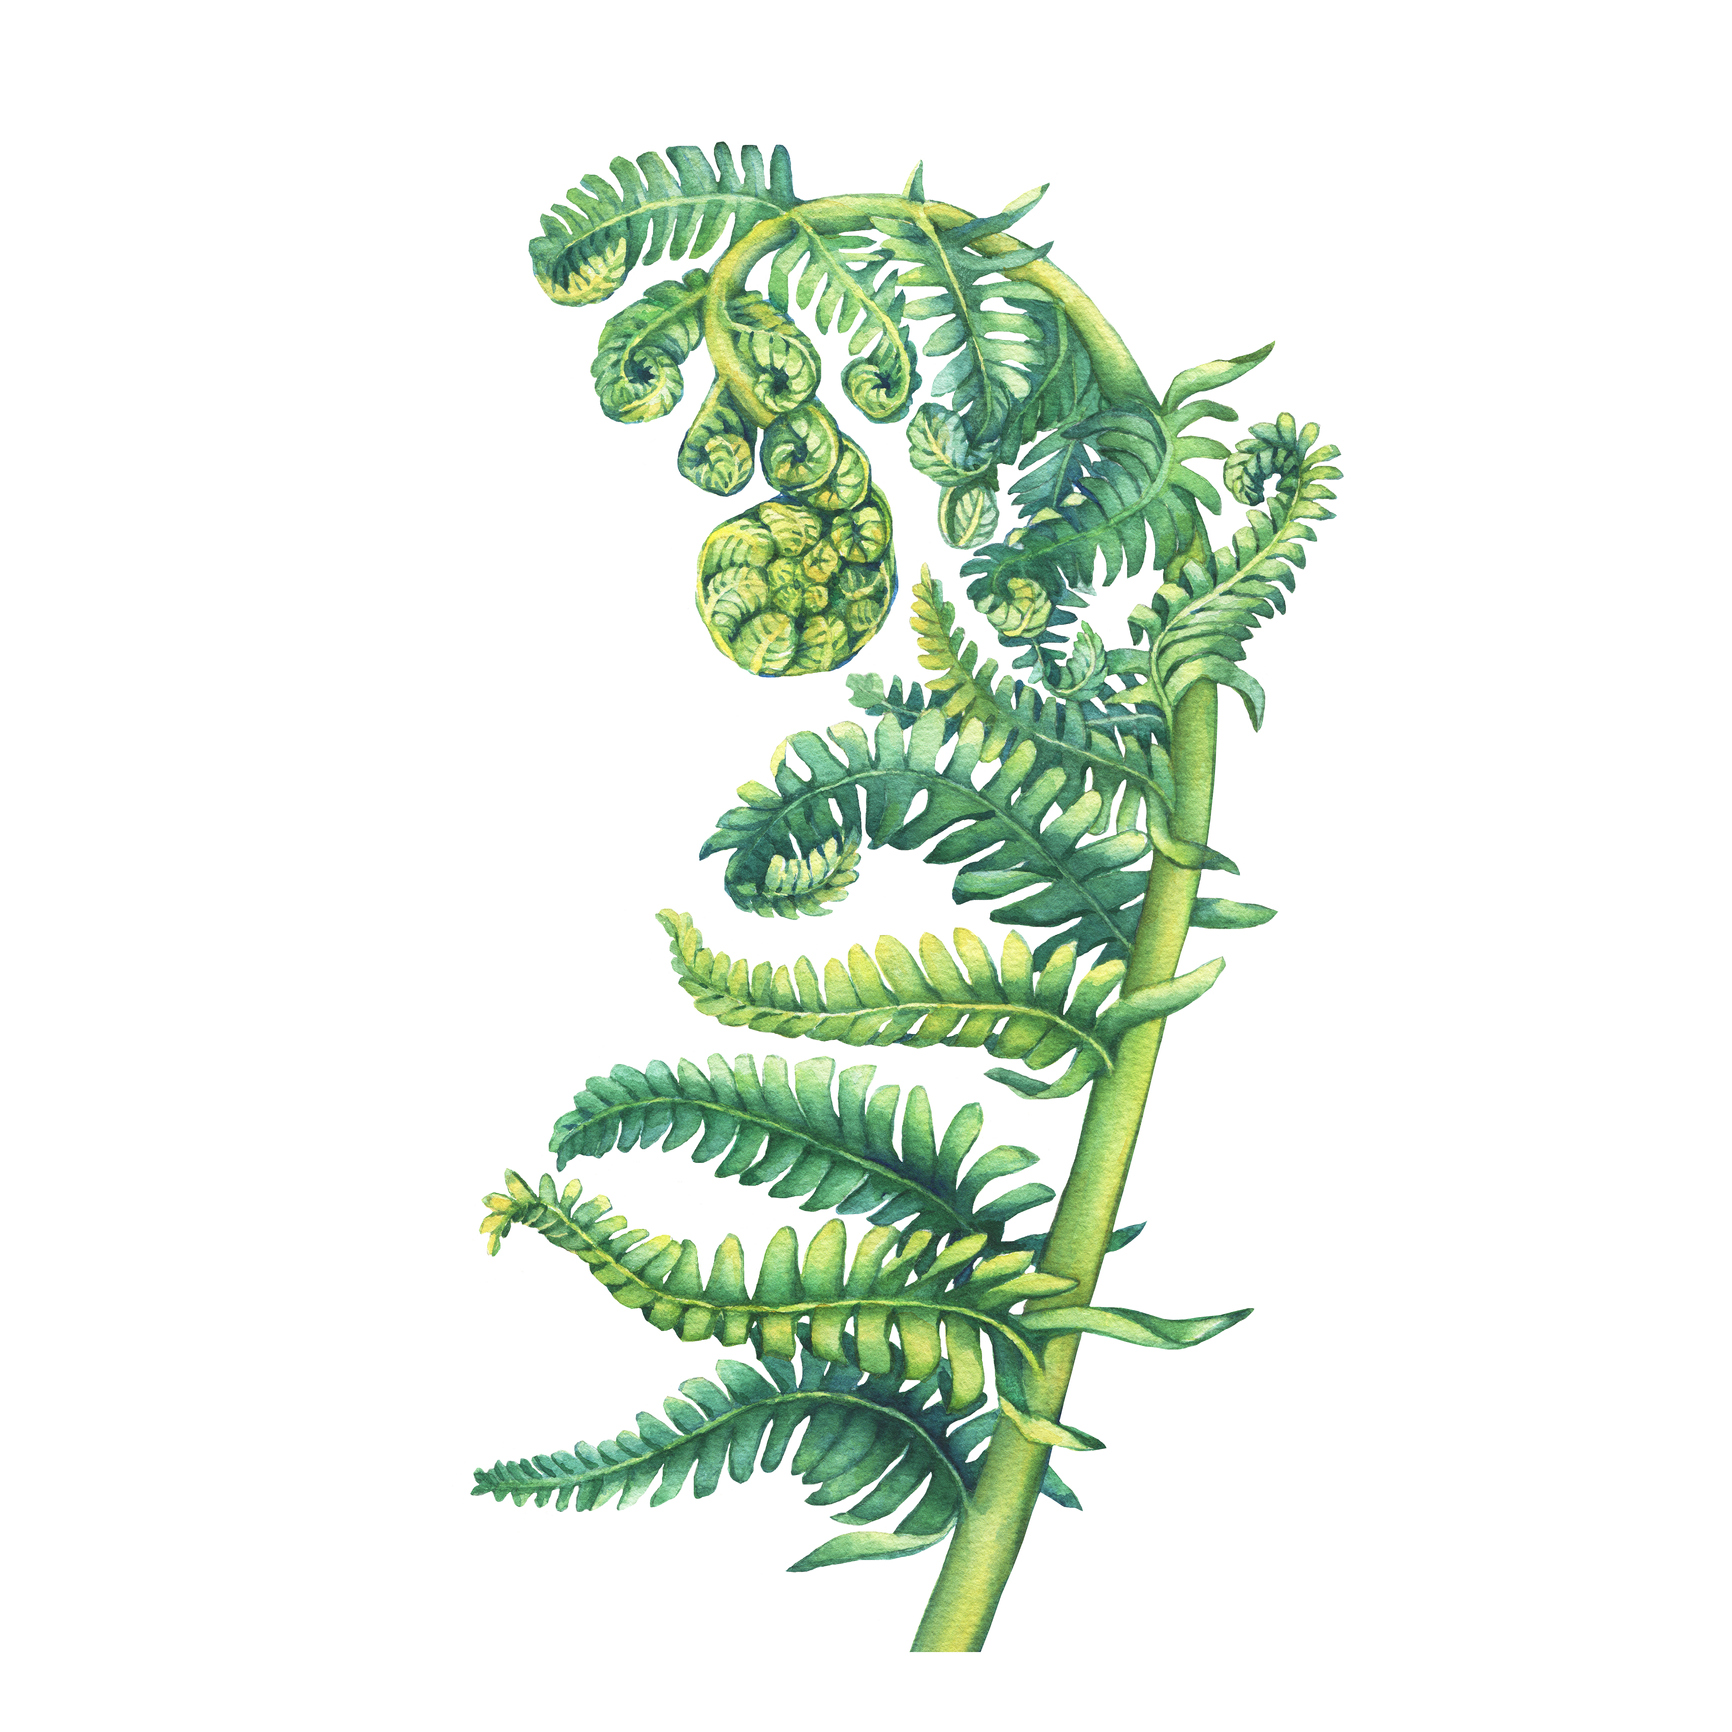 Ferns: Deer Resistant, Evergreen, Beautiful